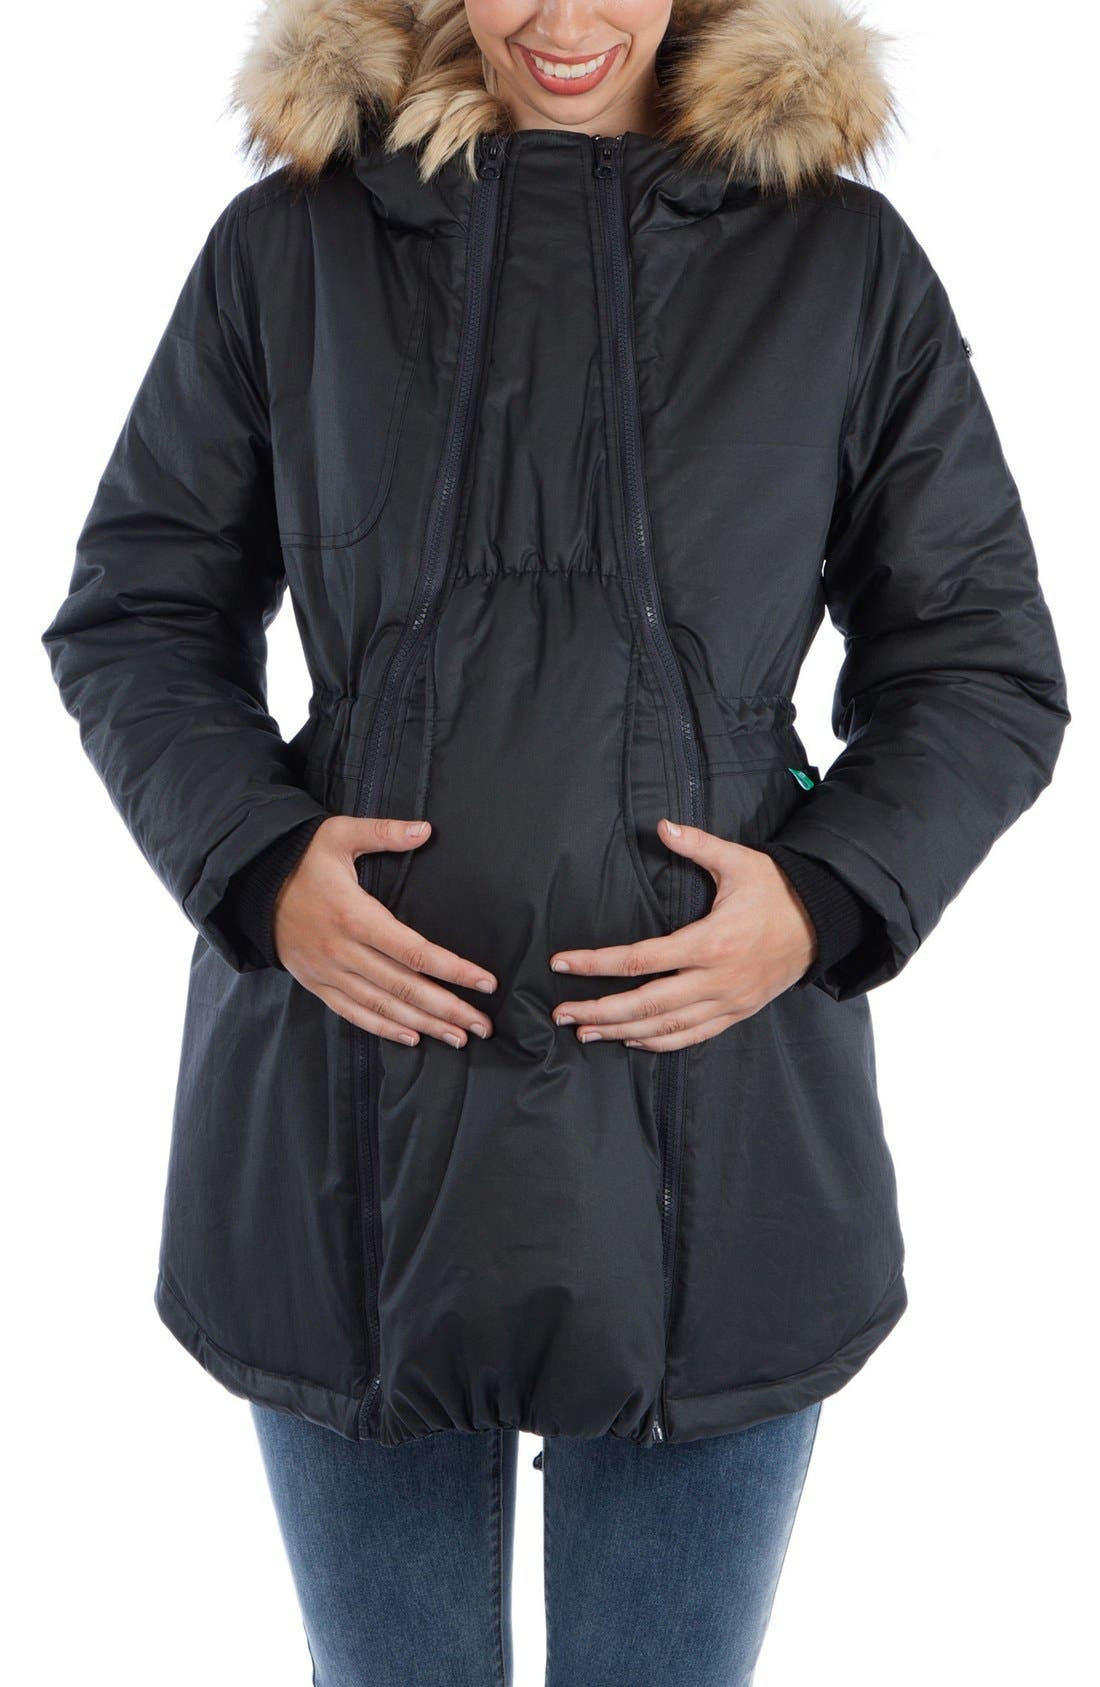 Modern Eternity Sofia Waxed Shell Maternity Jacket with Faux Fur Trim